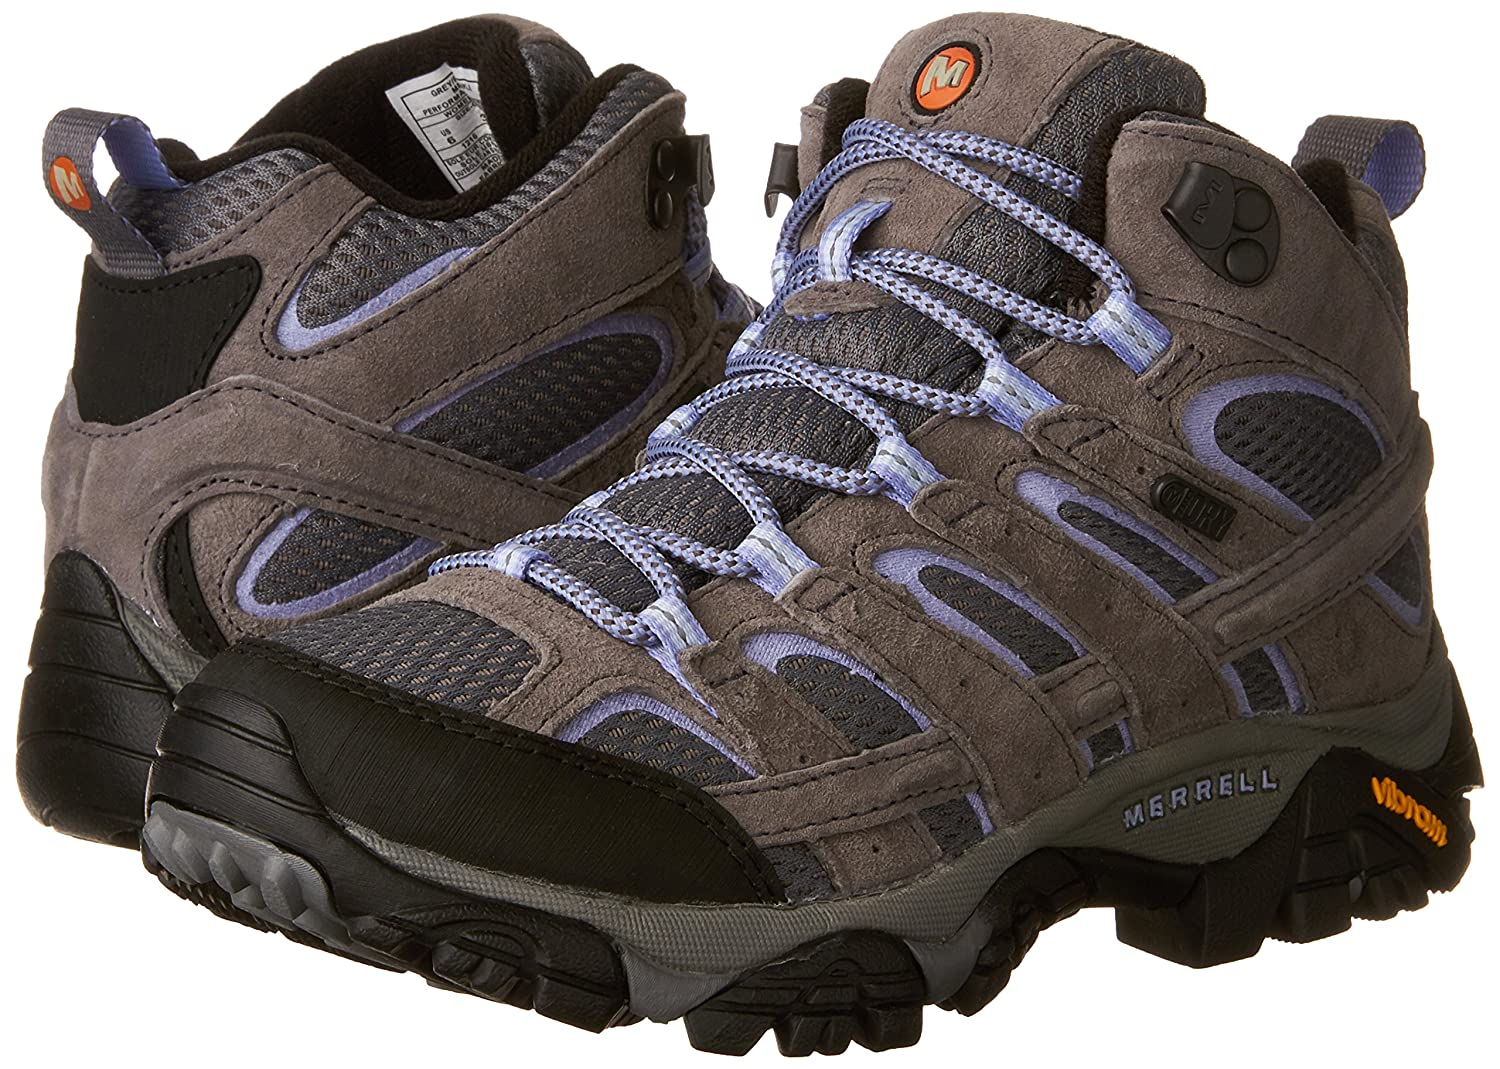 Merrell Women's Moab 8.5 2 Mid Waterproof Hiking Boot B01MU2WKMC 8.5 Moab B(M) US|Grey/Periwinkle 754c54